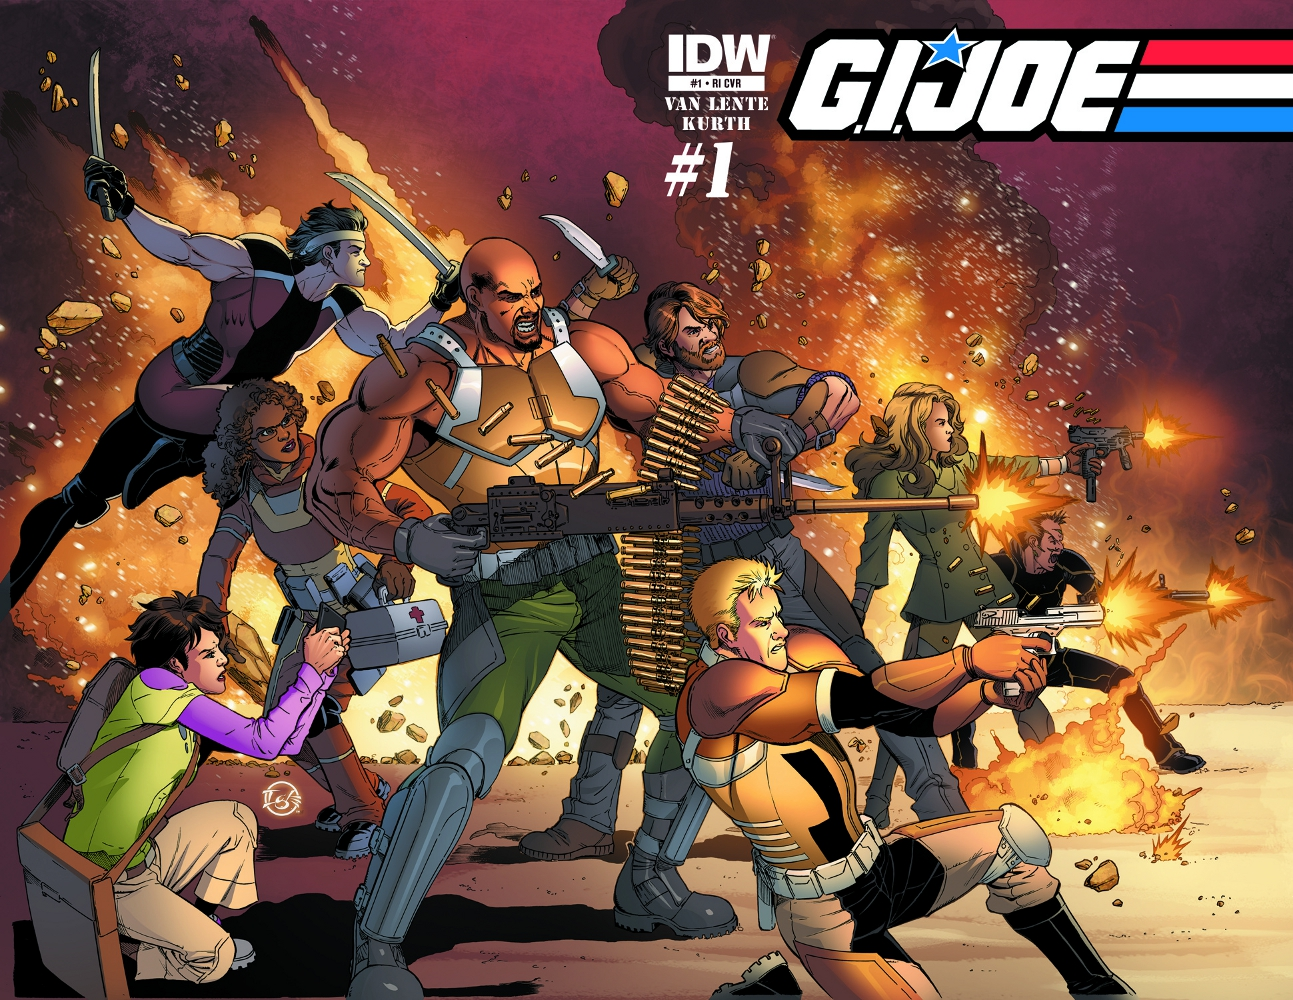 GIJOE New 01 CvrRI IDW PUBLISHING Solicitations for FEBRUARY 2013